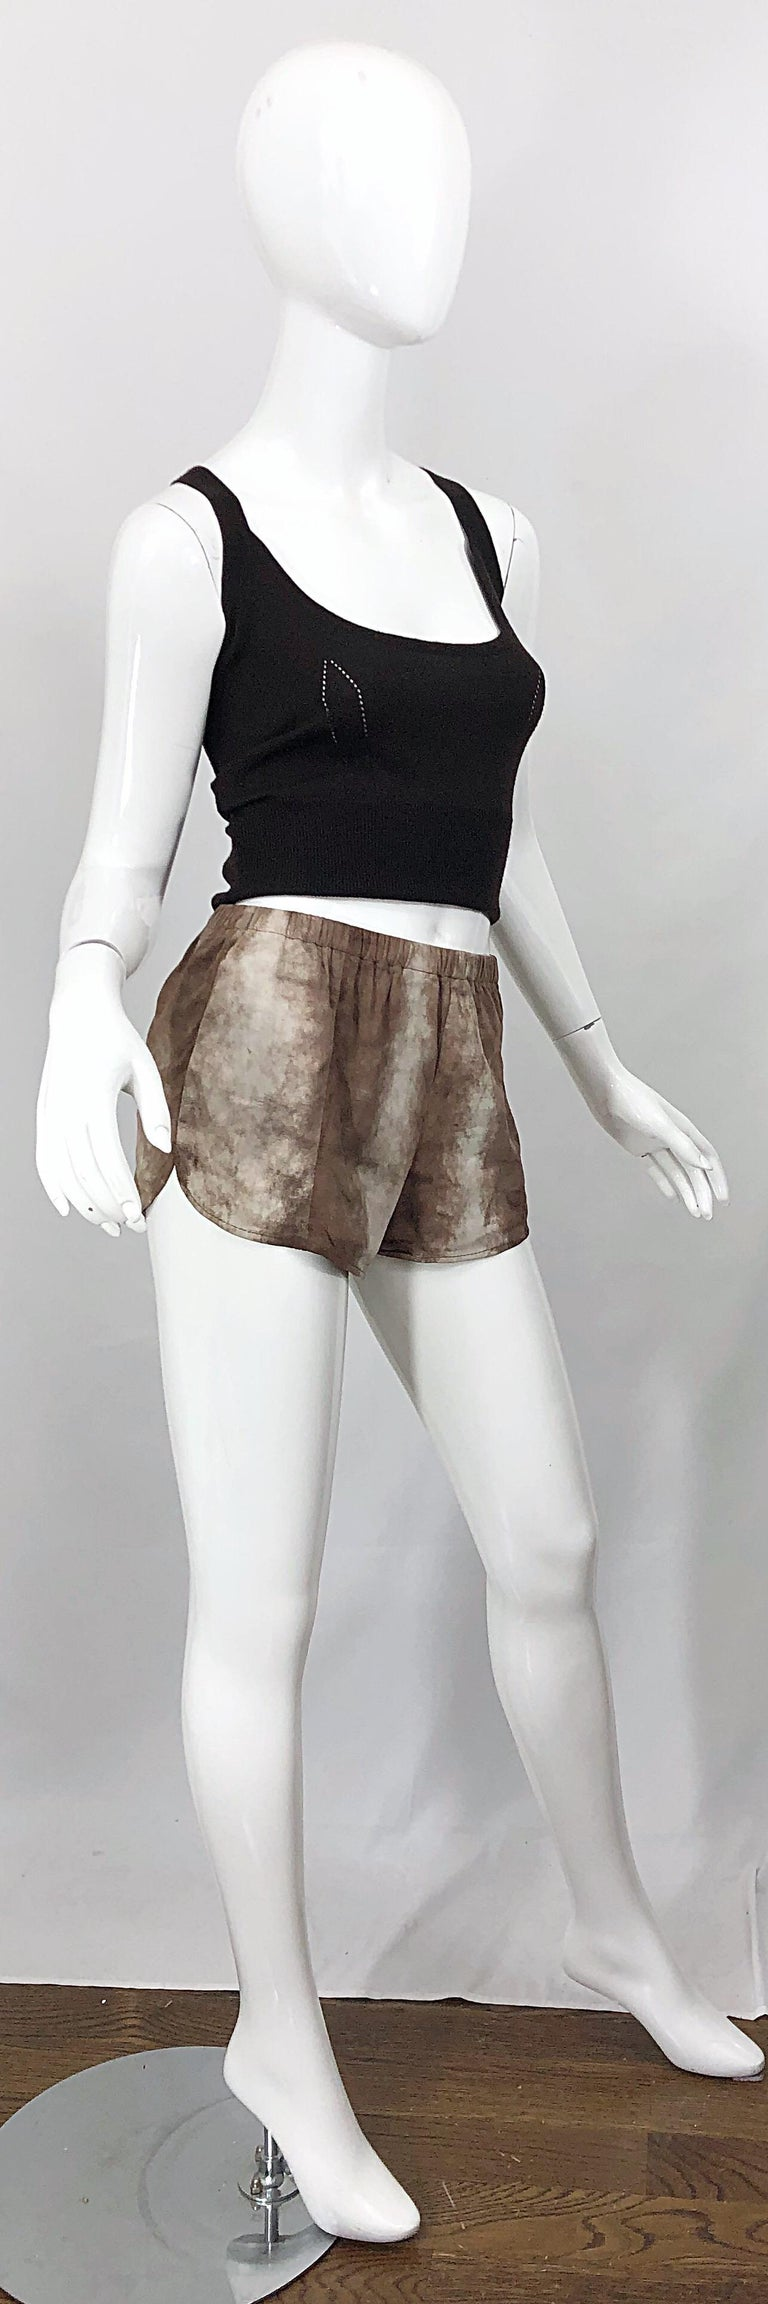 1980s Love, Melody Sabatasso Sheepskin Leather Brown Vintage 80s Hot Pant Shorts For Sale 8